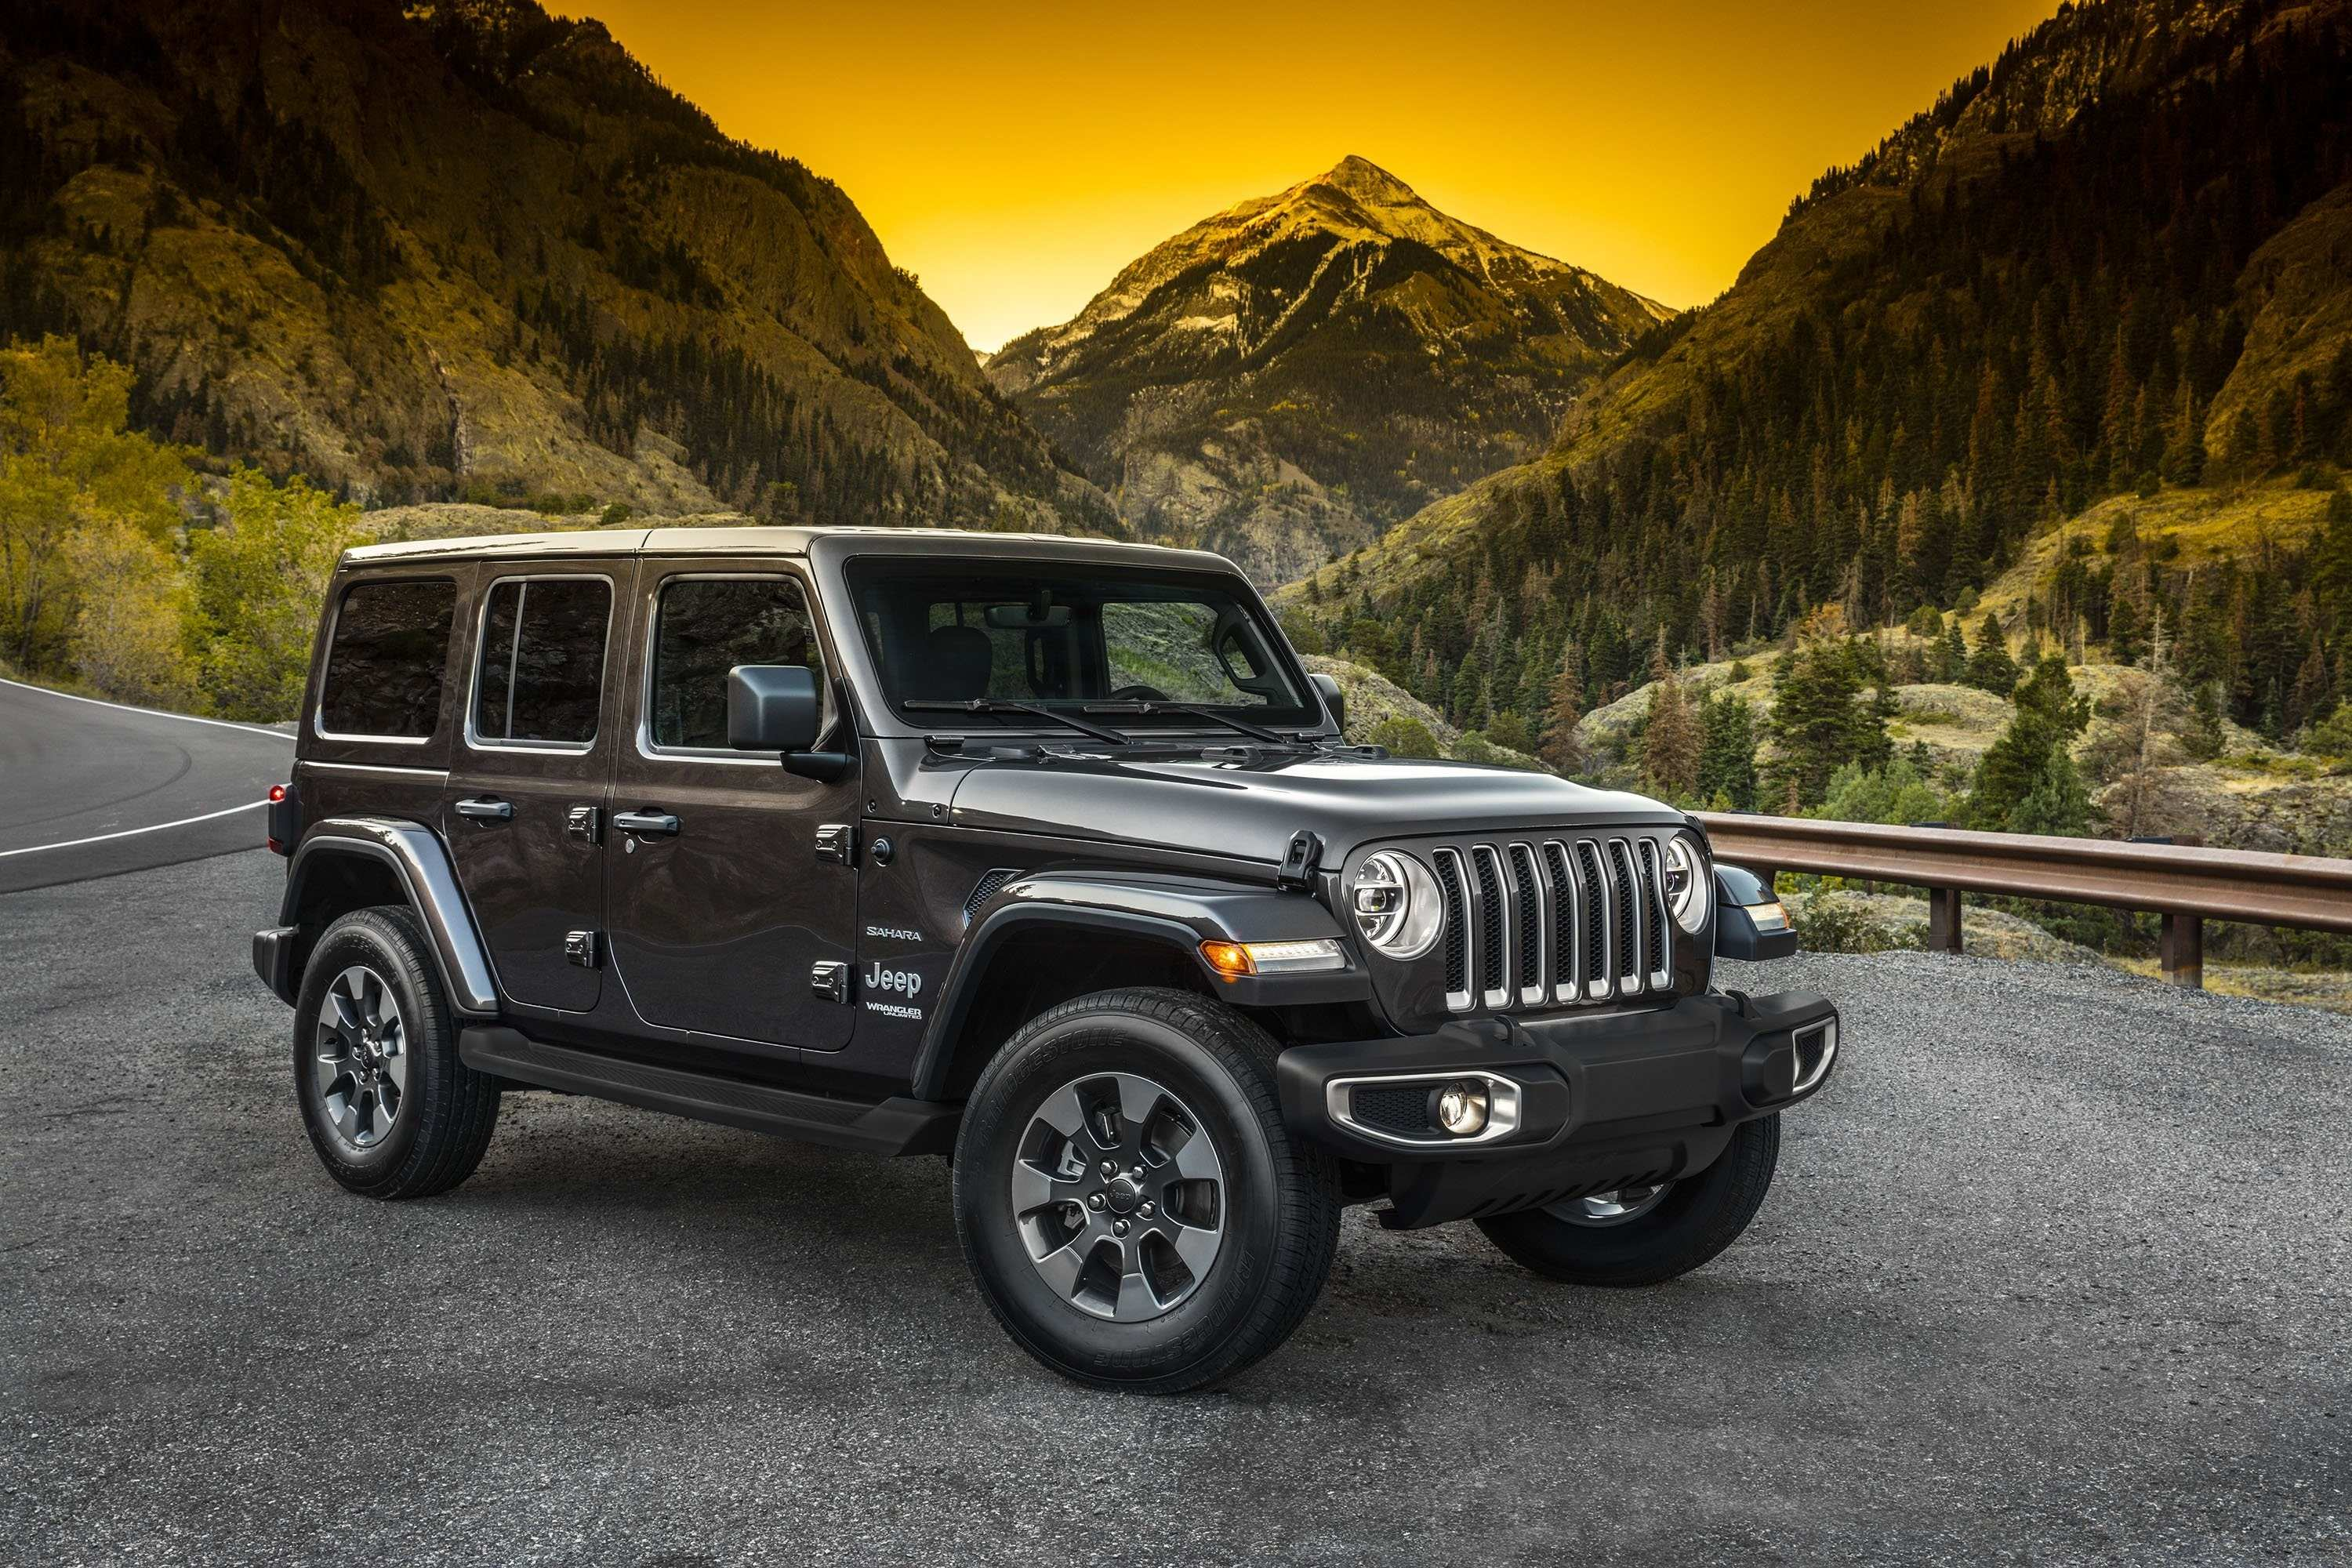 77 All New 2020 Jeep Jeepster Spesification for 2020 Jeep Jeepster